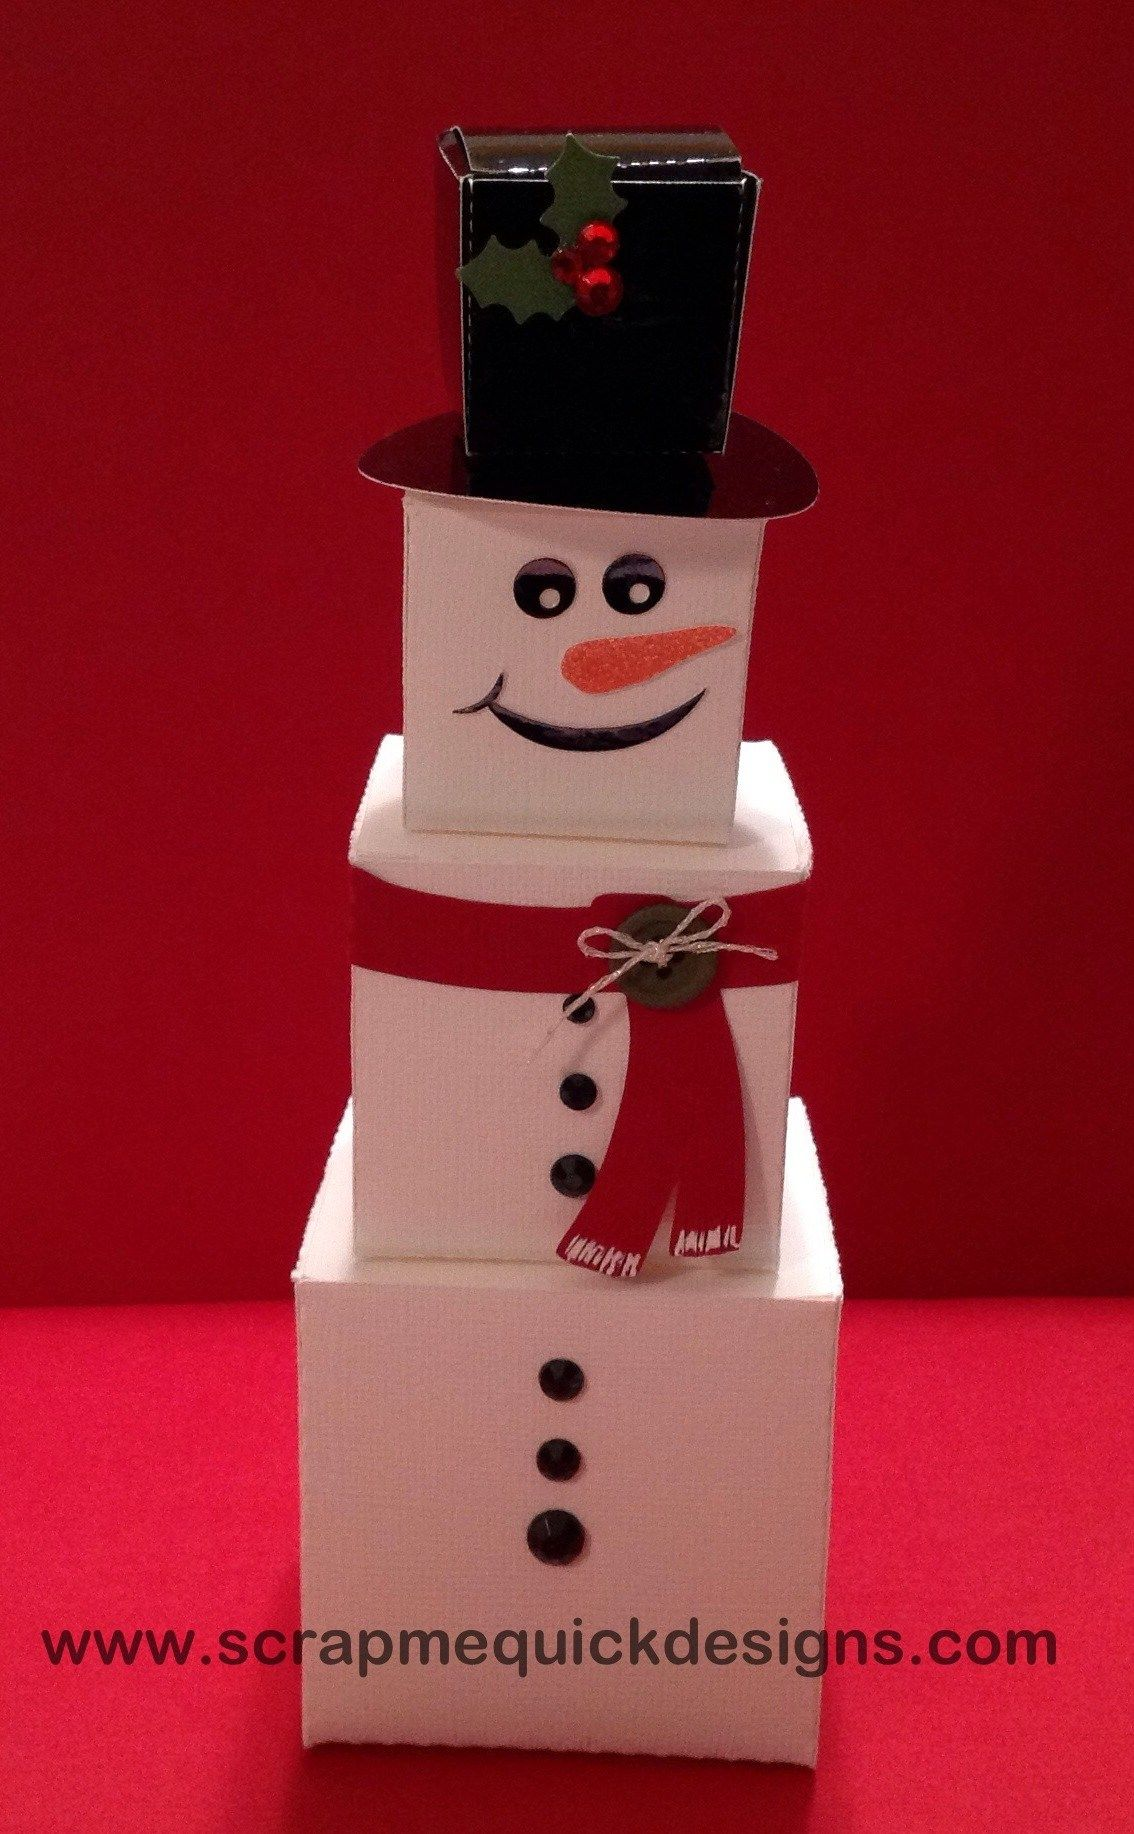 Day 11 25 Days of Christmas Projects Inspiration